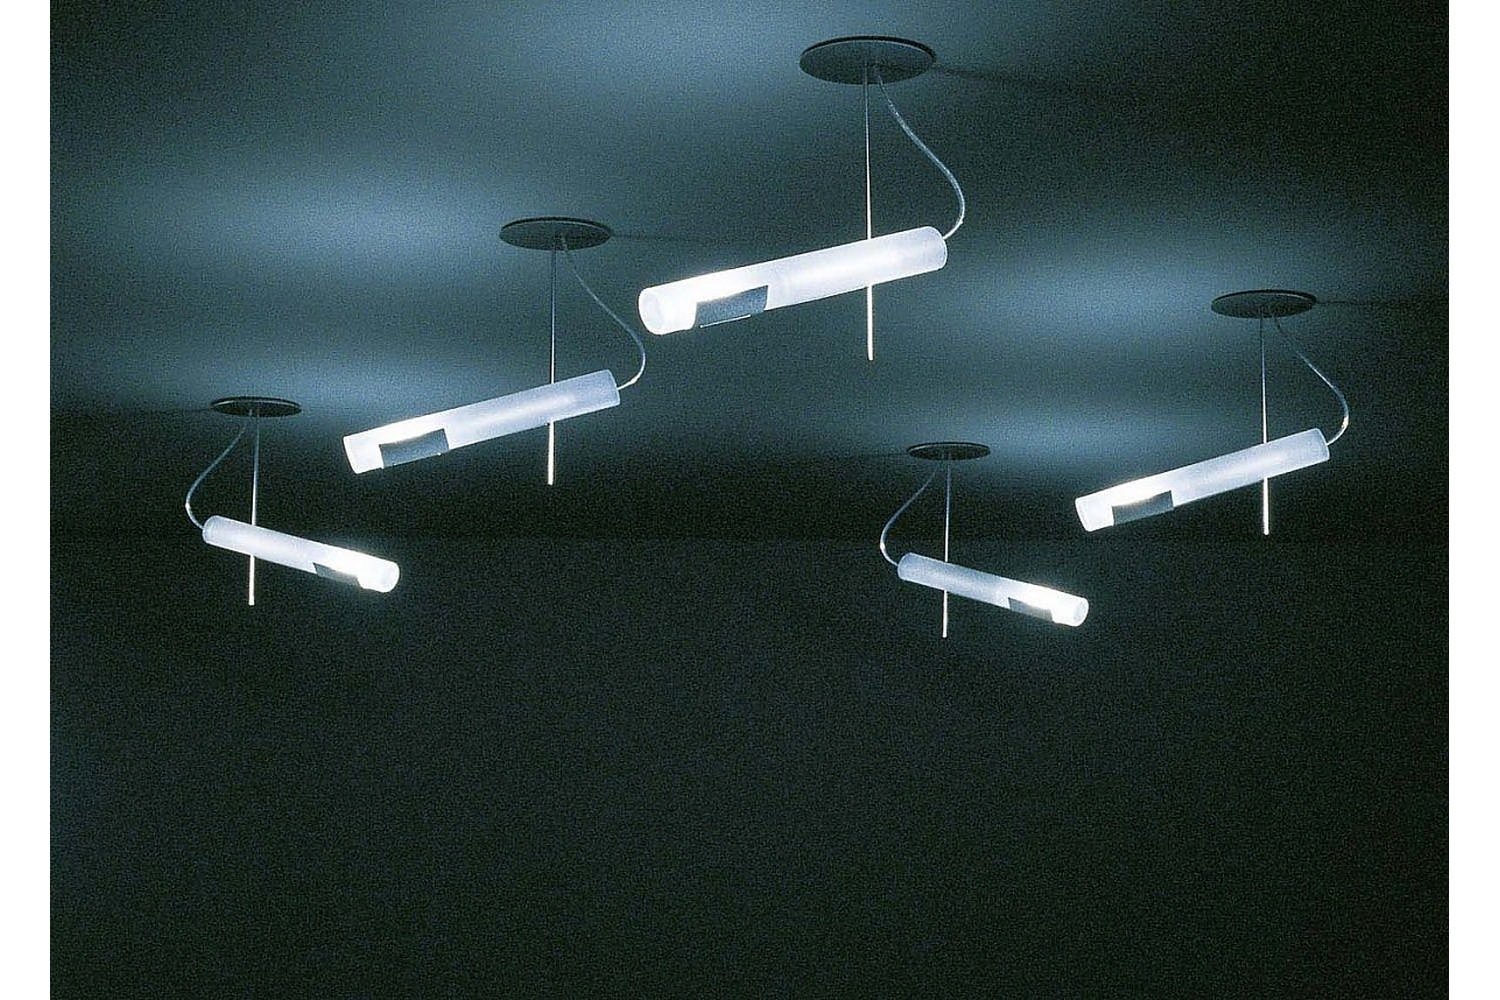 Zuuk Ceiling Lamp by Ingo Maurer for Ingo Maurer